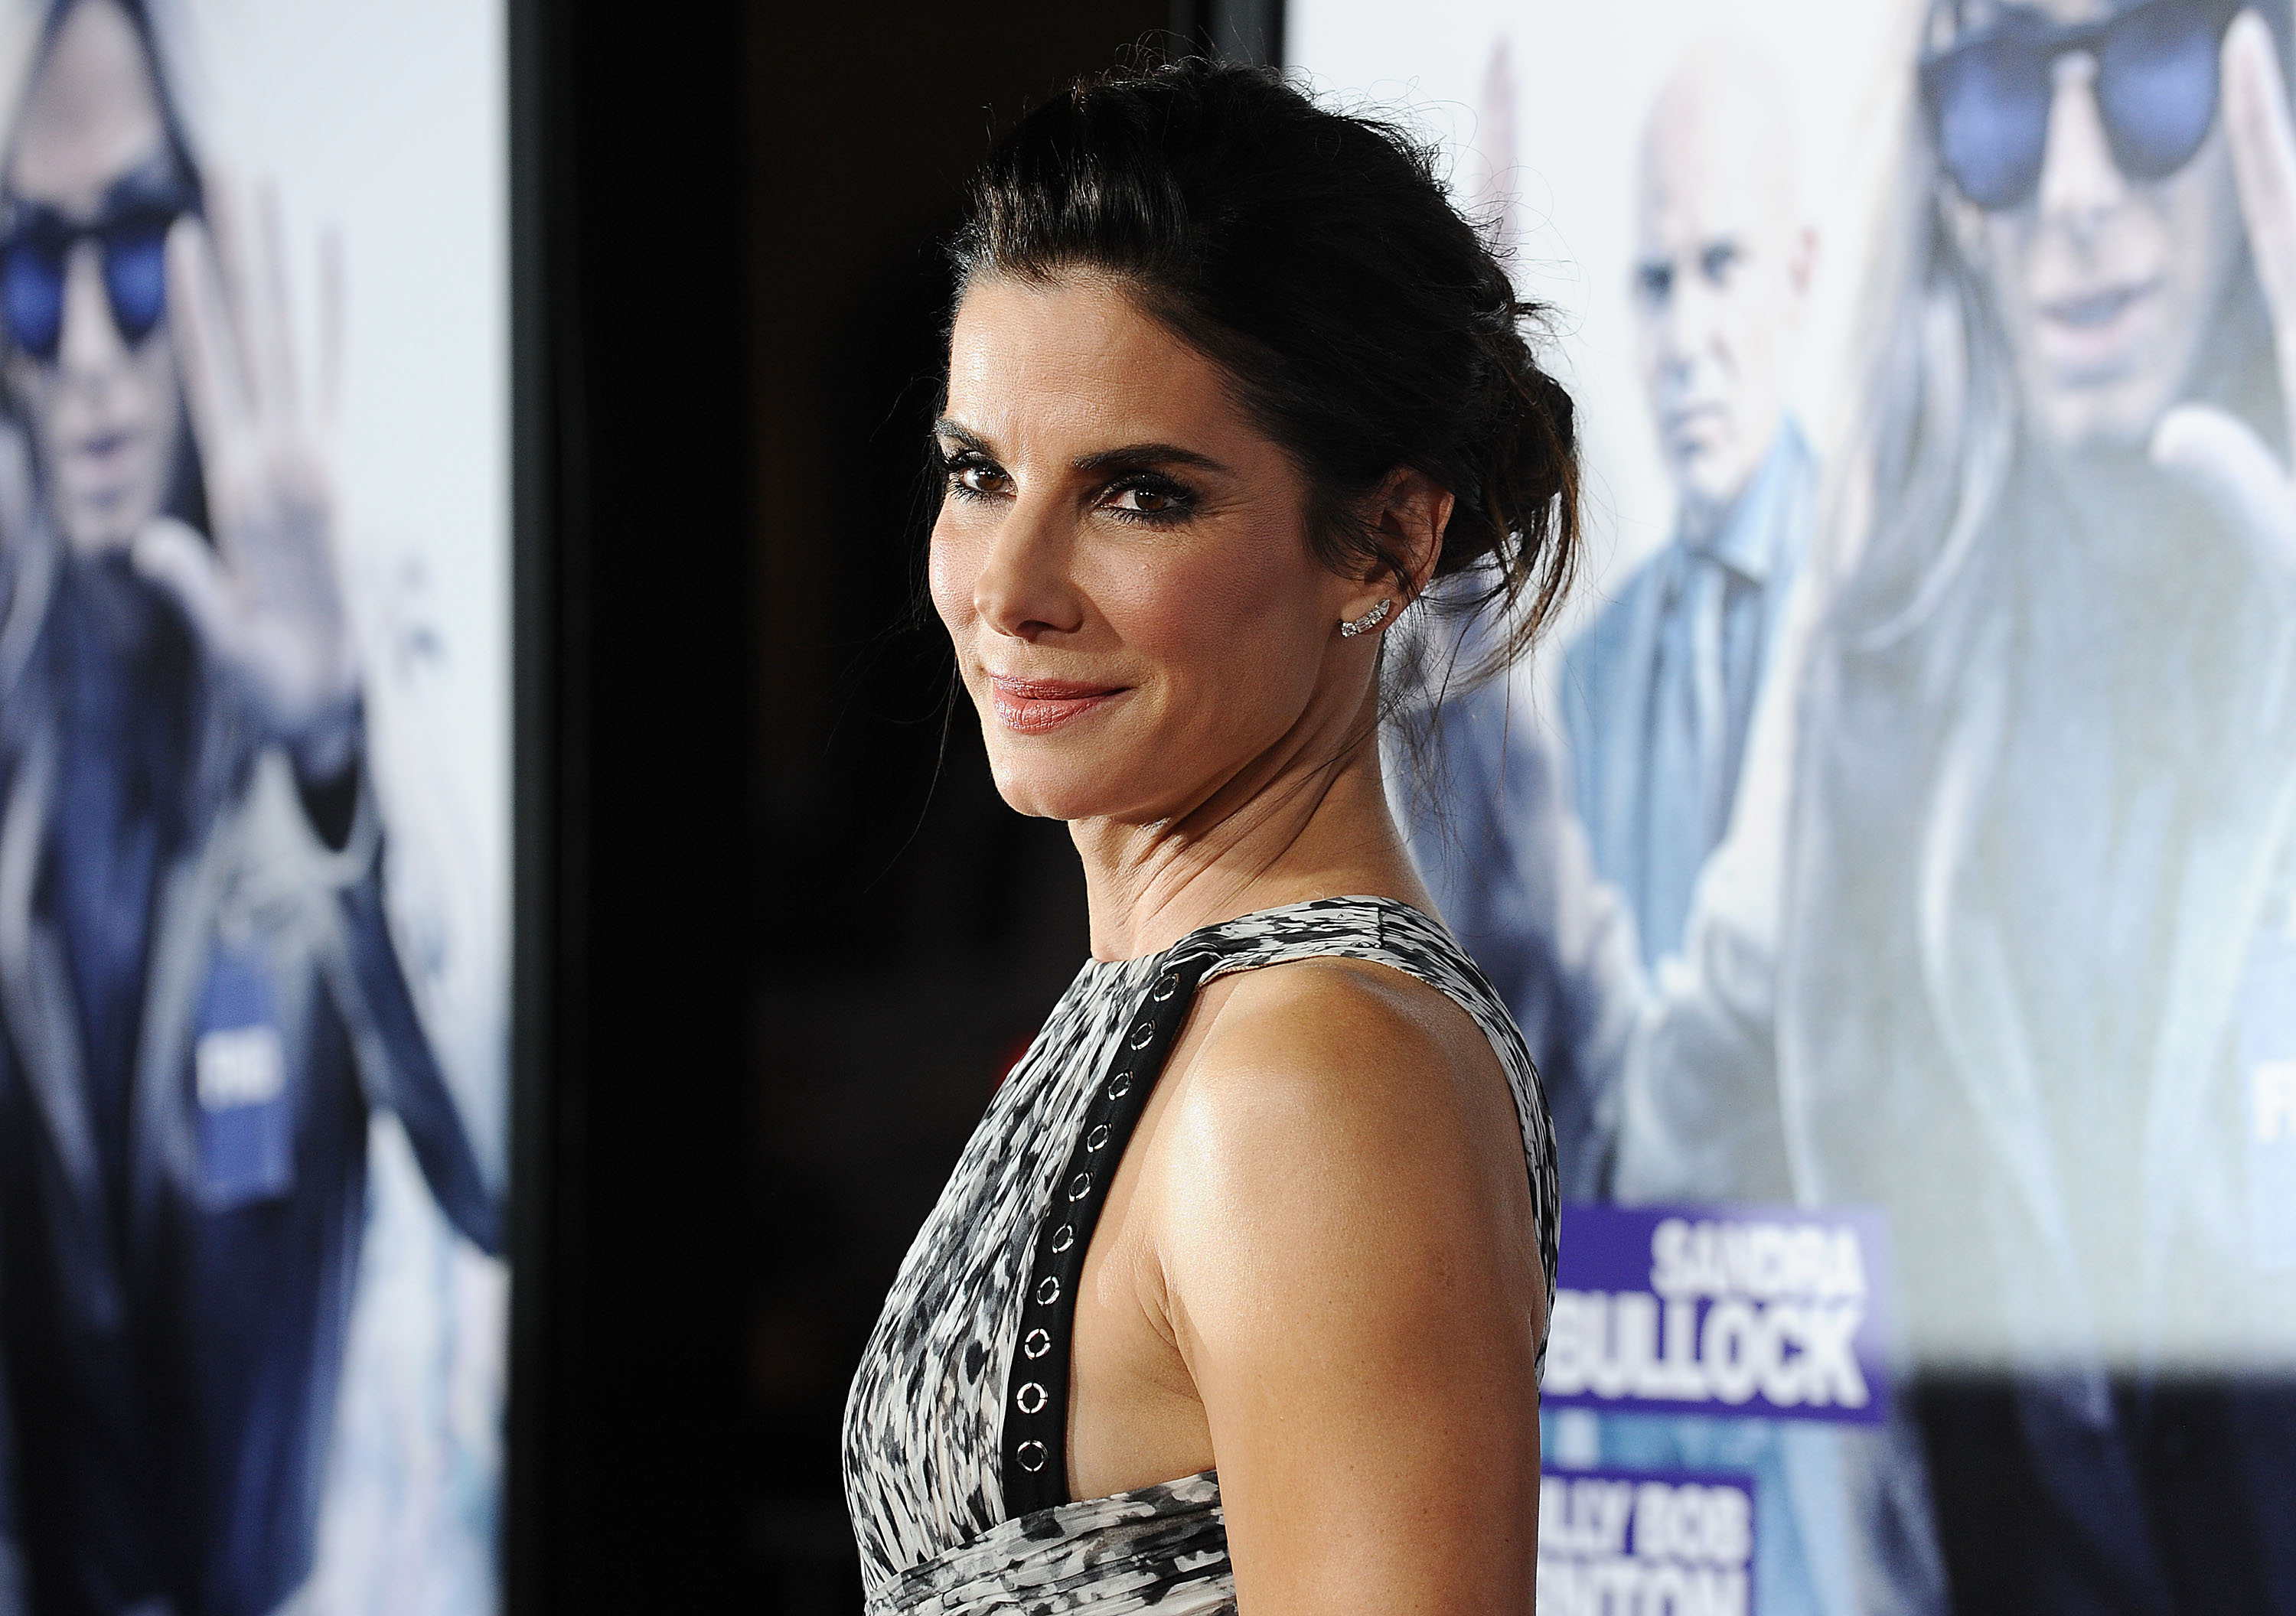 Sandra Bullock attends the premiere of  Our Brand Is Crisis  in Hollywood, CA on Oct. 26, 2015.